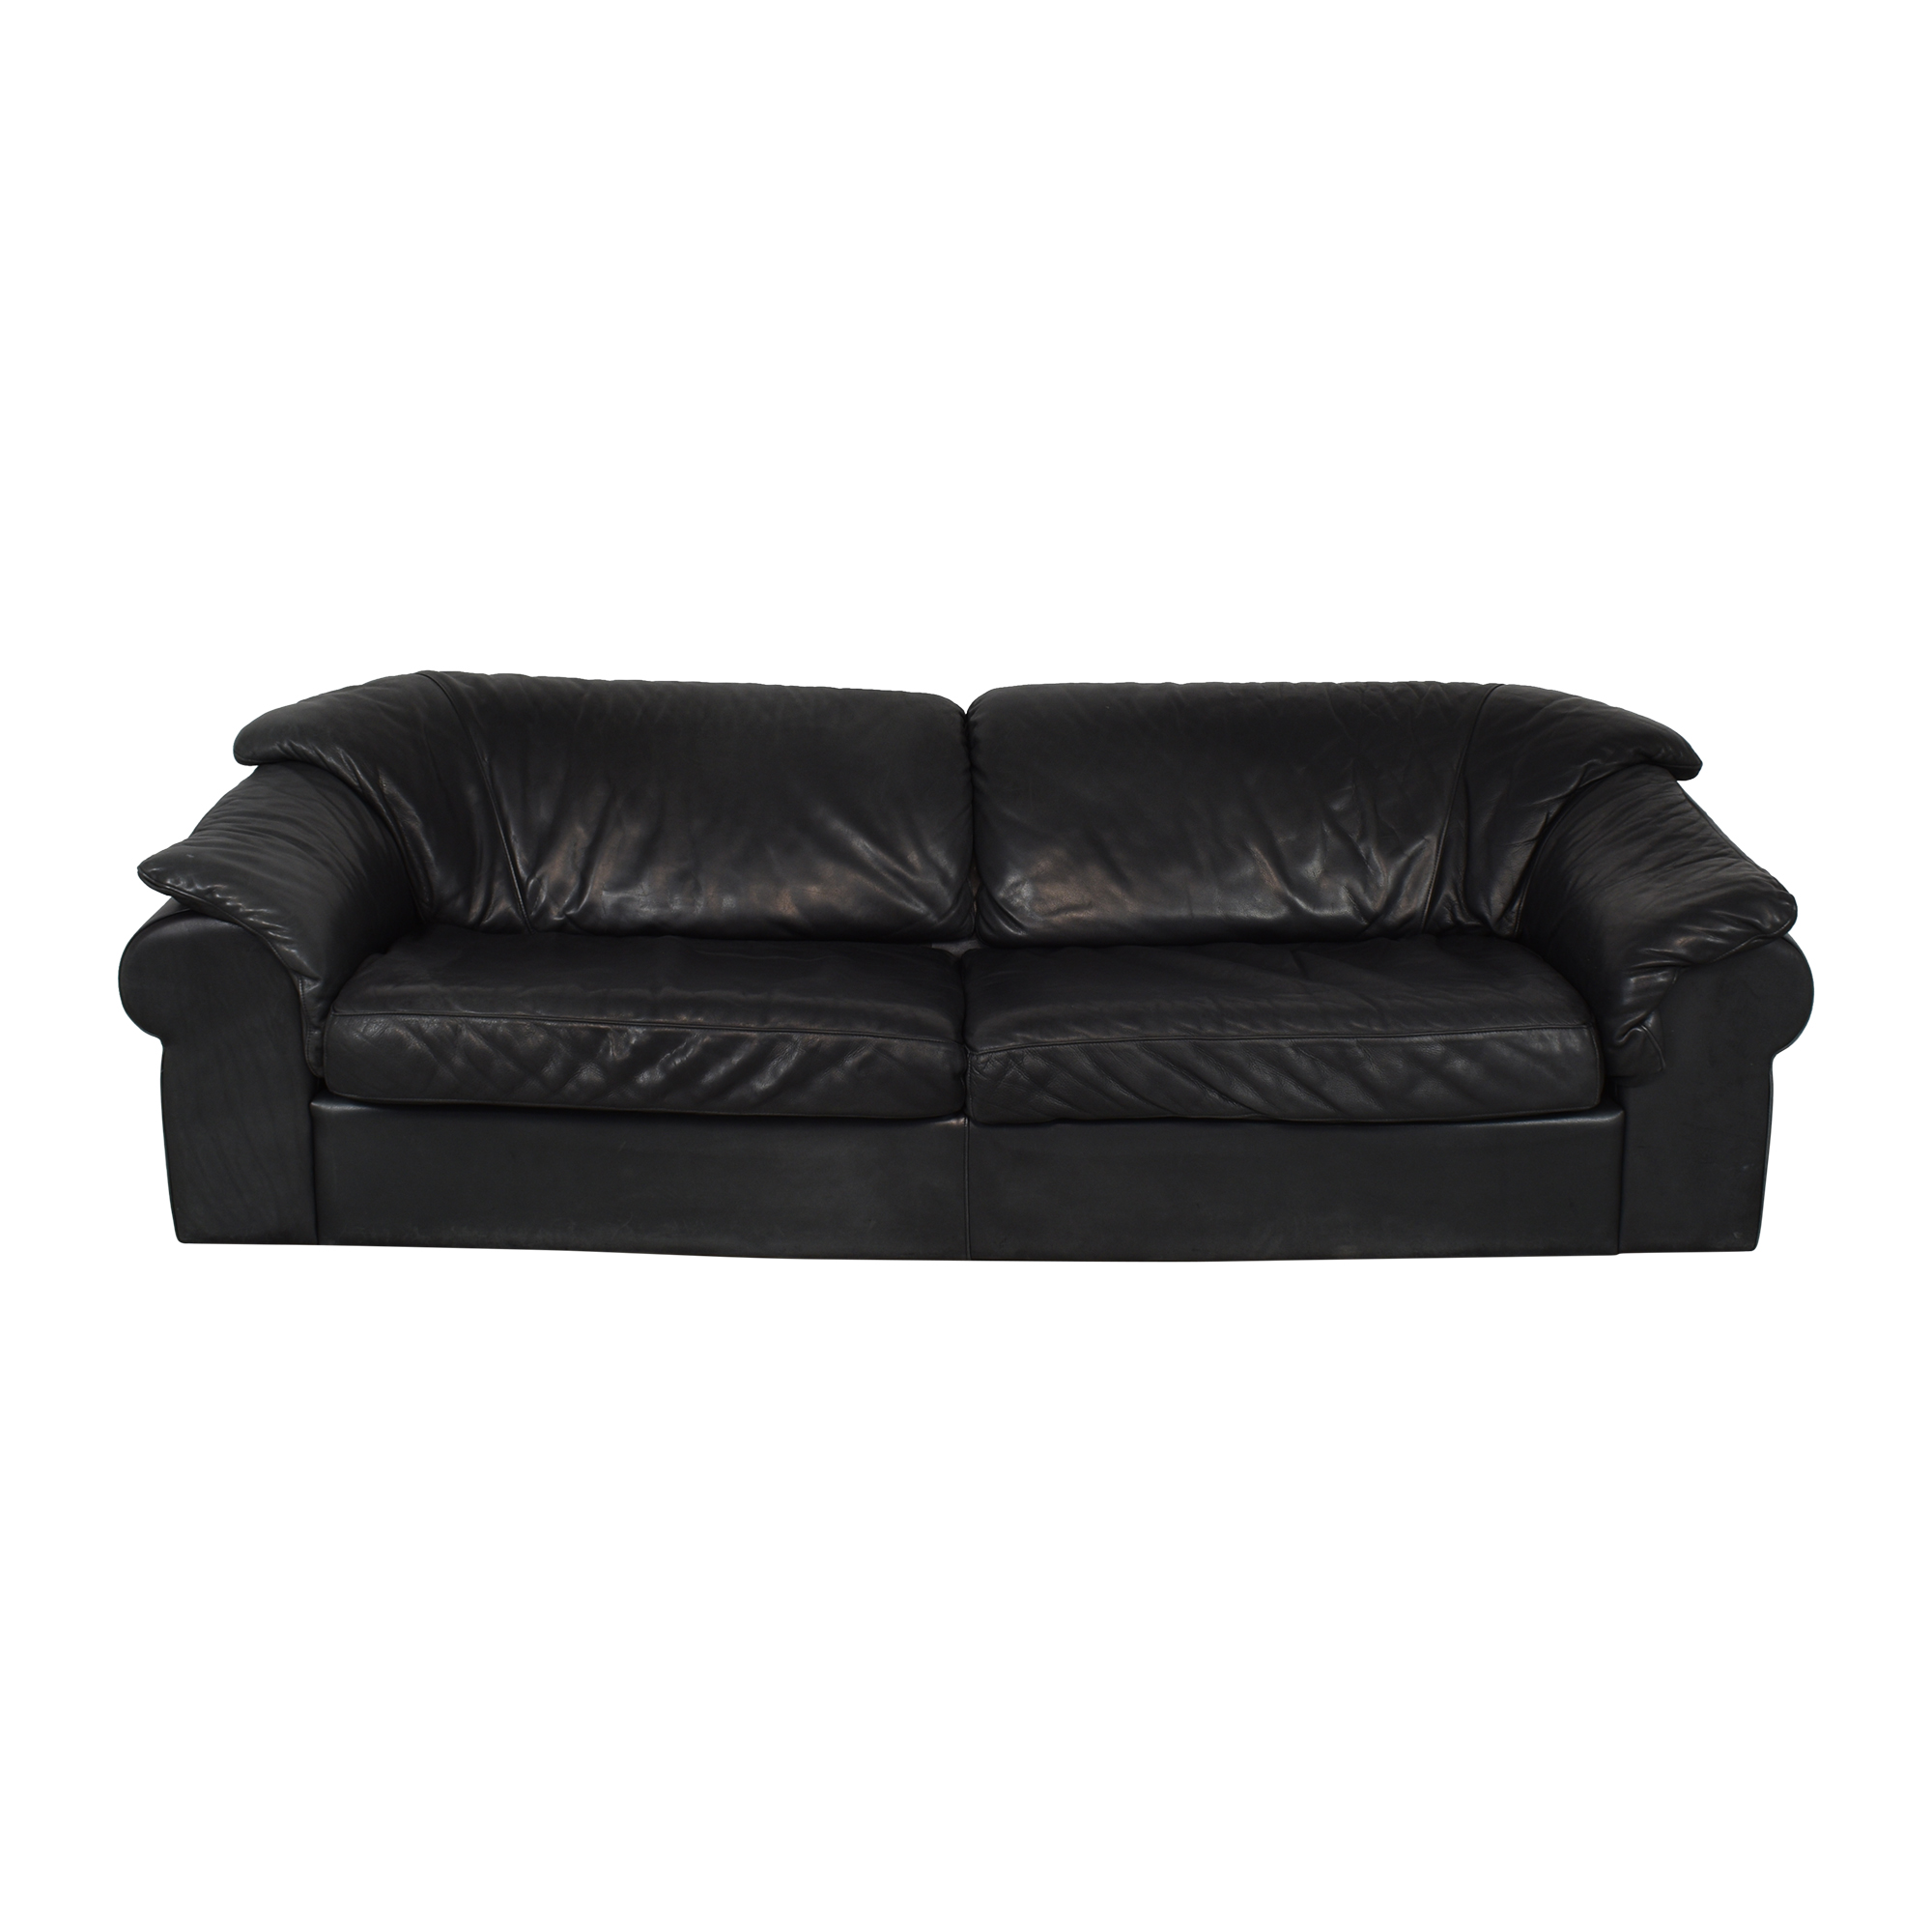 Leather Center Leather Center Sofa nyc